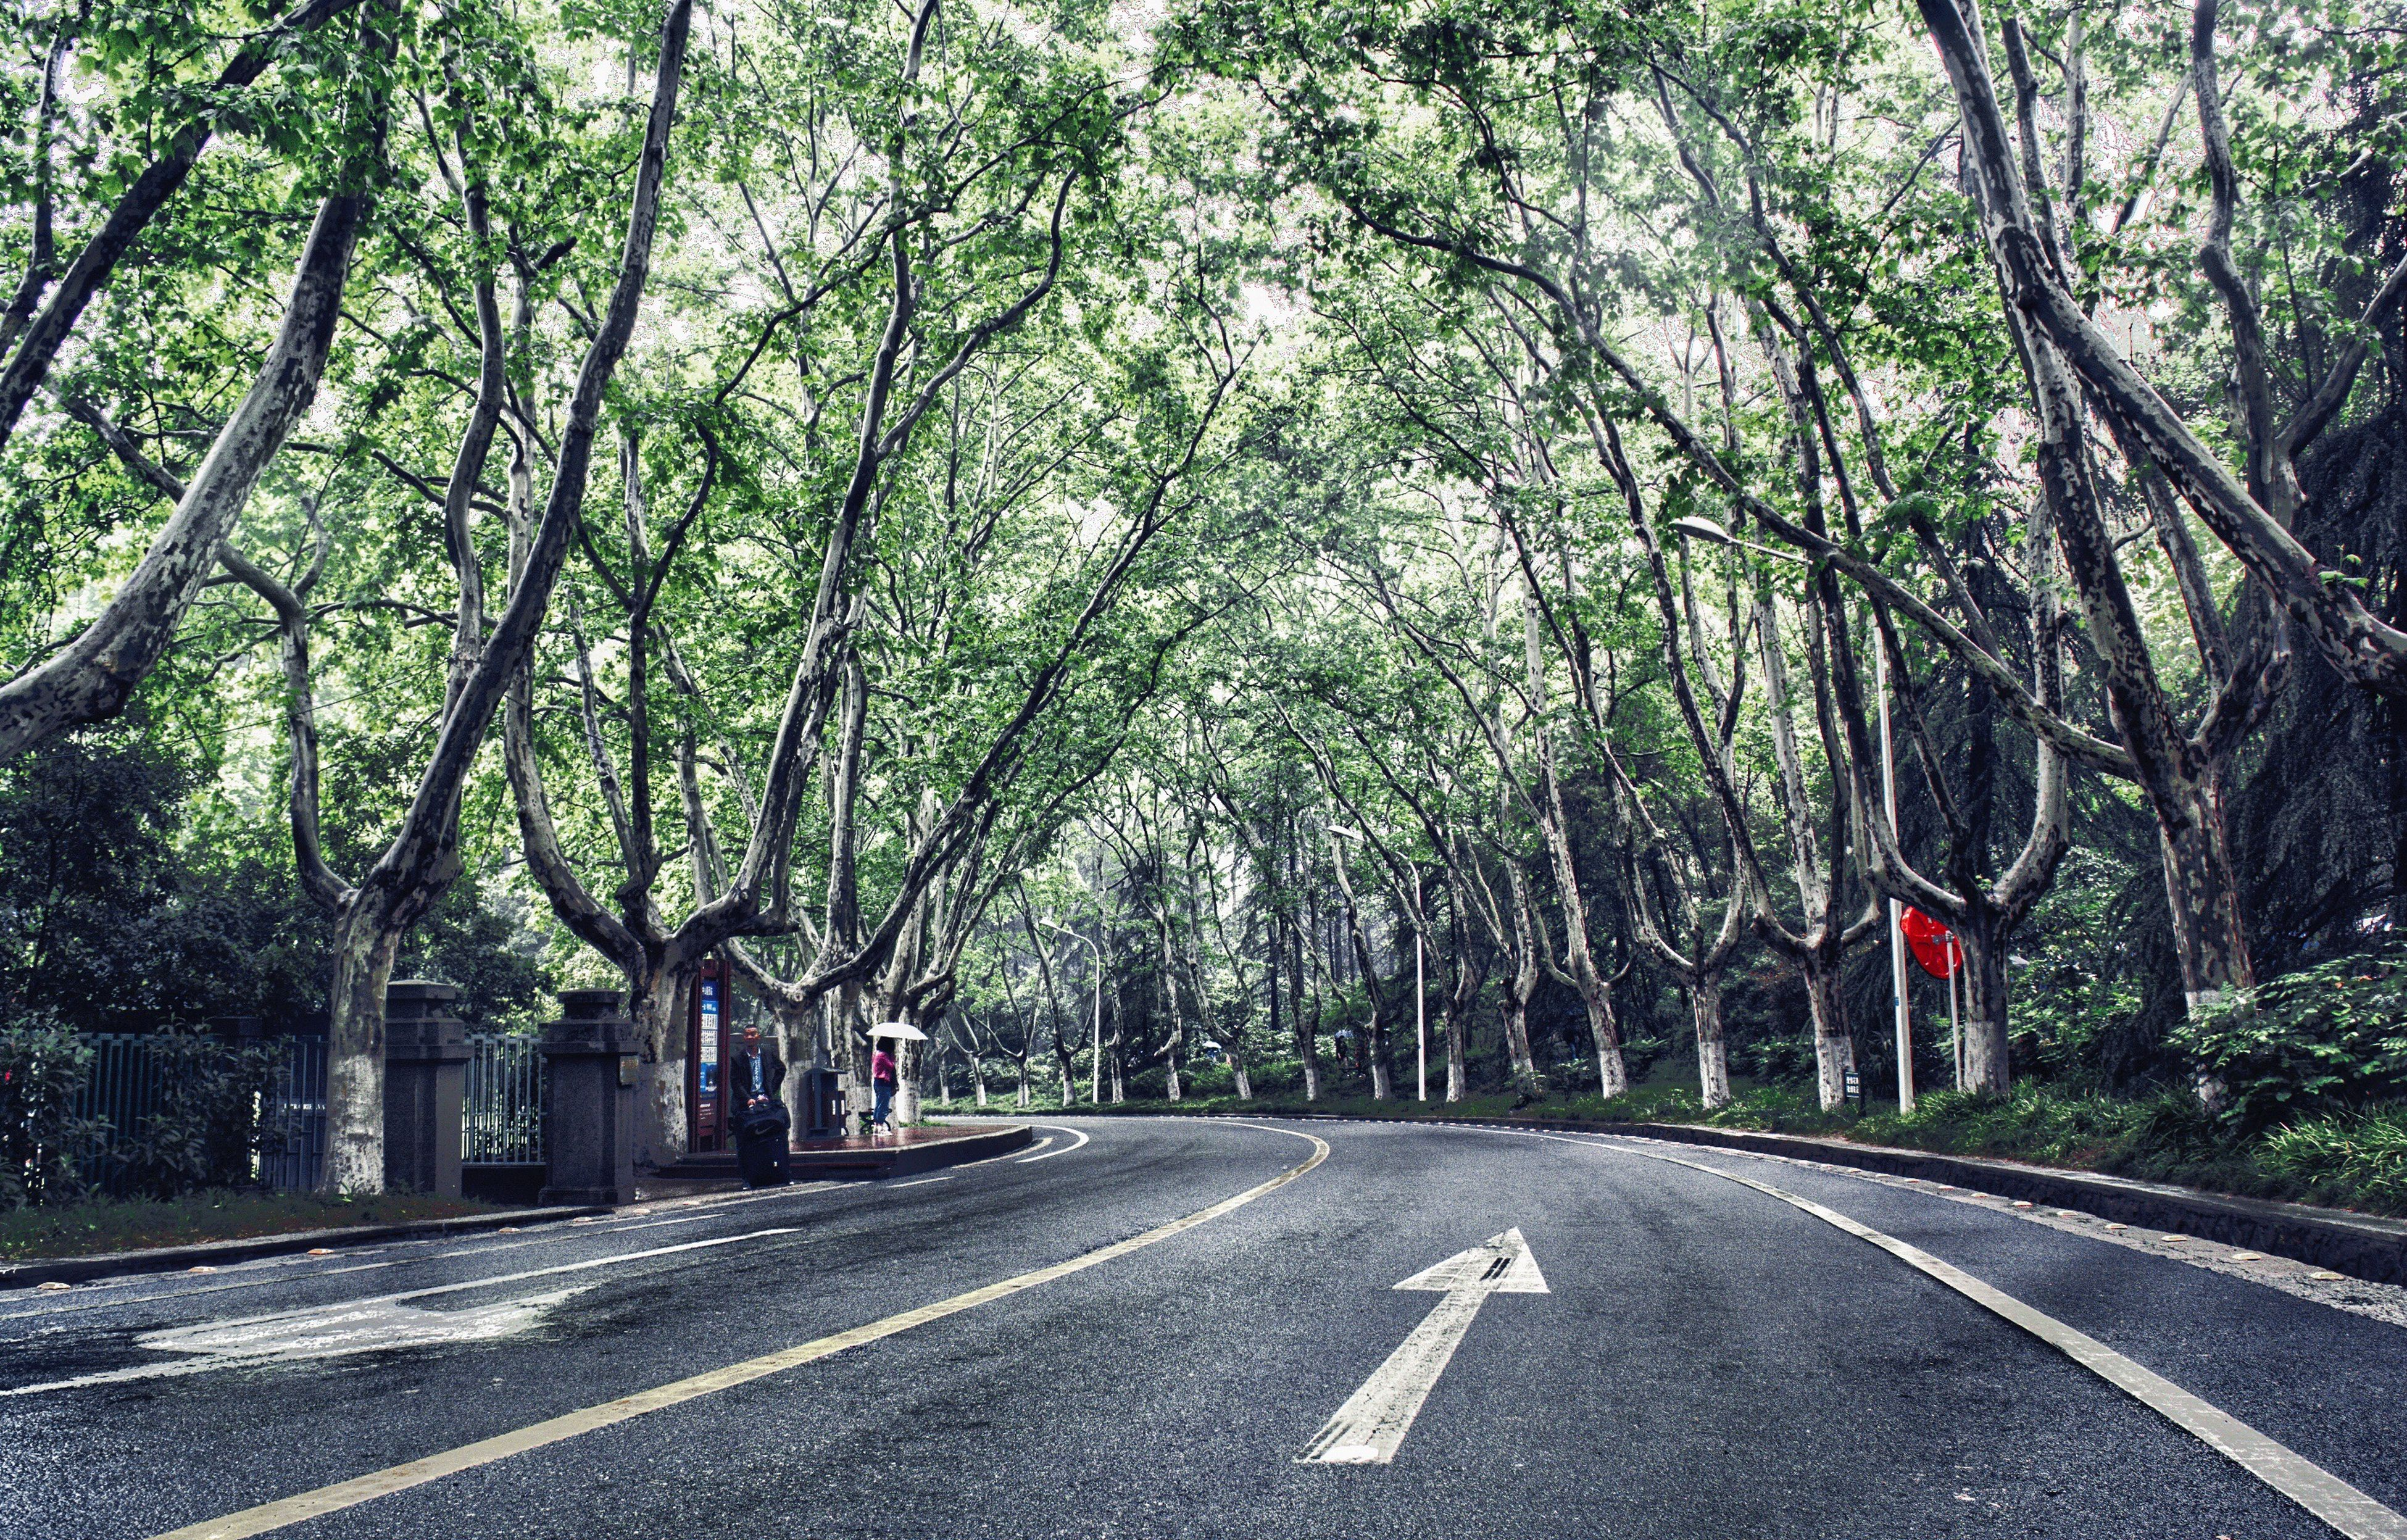 the way forward, tree, transportation, road, road marking, diminishing perspective, vanishing point, street, empty road, asphalt, treelined, road sign, empty, double yellow line, growth, country road, day, long, nature, outdoors